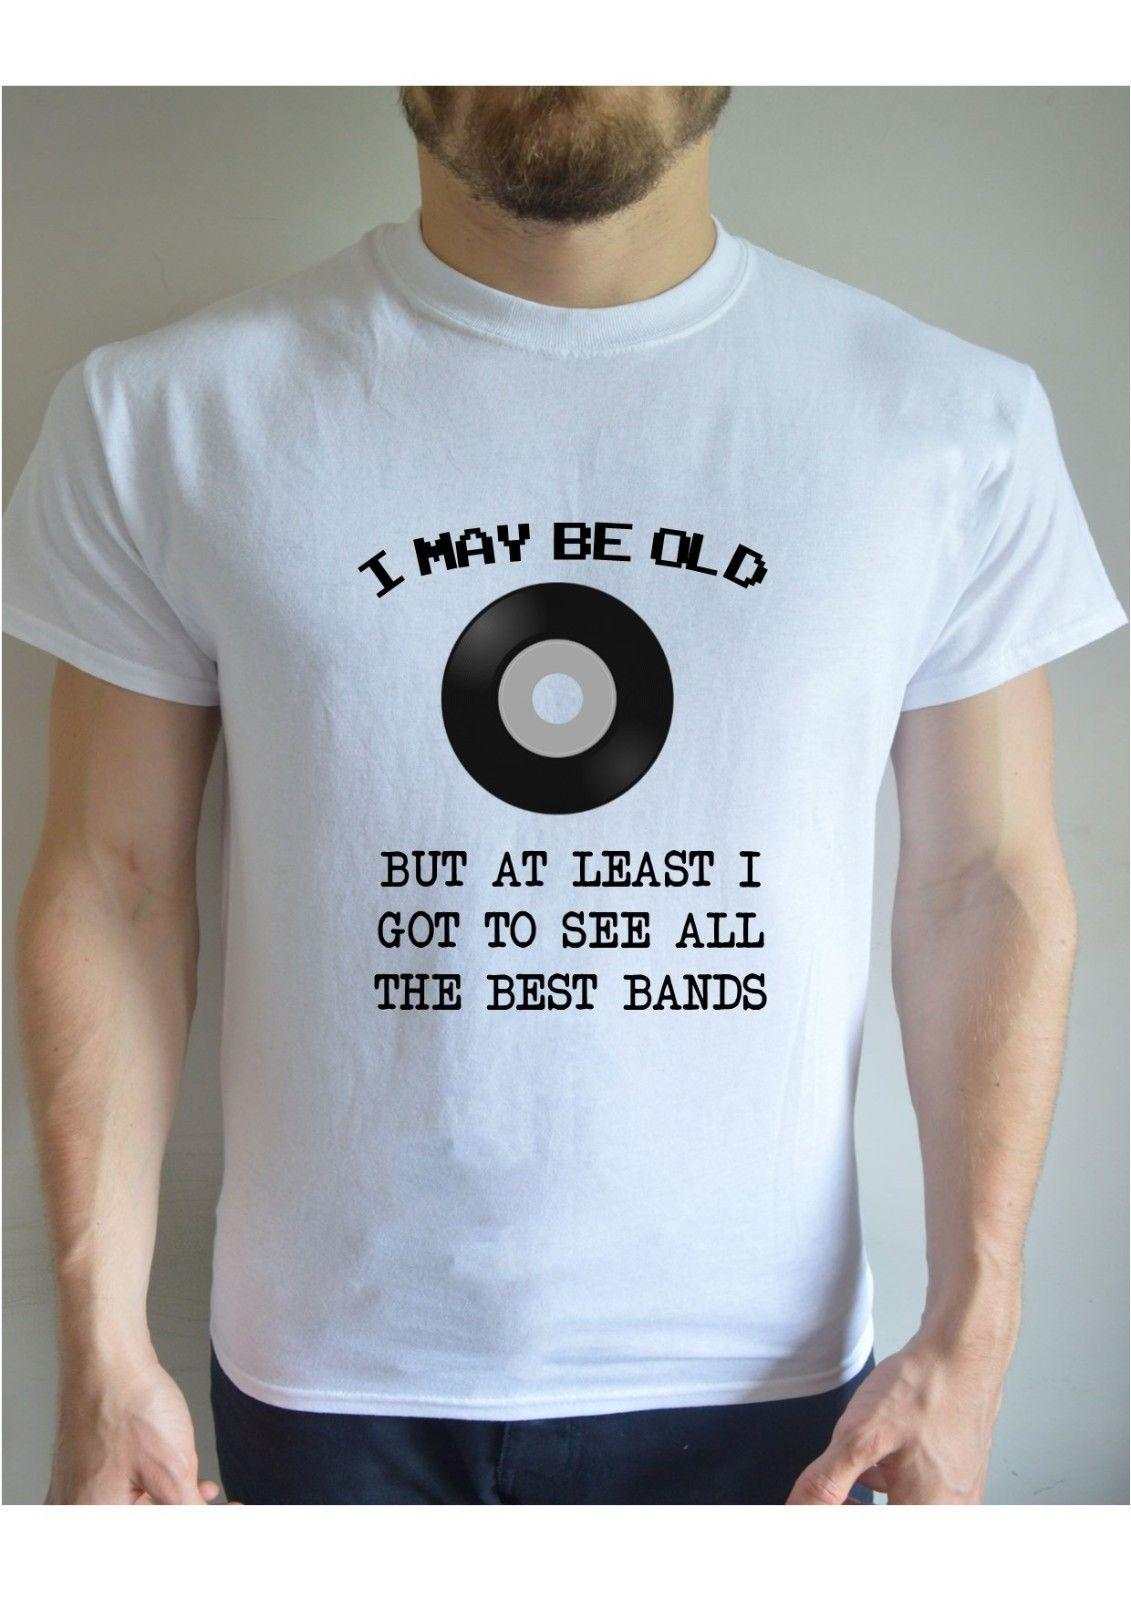 e6a404d9 I May Be Old Bands Dad Music Printed T Shirt Crew Funny Christmas Retro  Vintage Casual Short Sleeve T Shirt Summer Men'S Fashion Tee Funniest T  Shirt ...